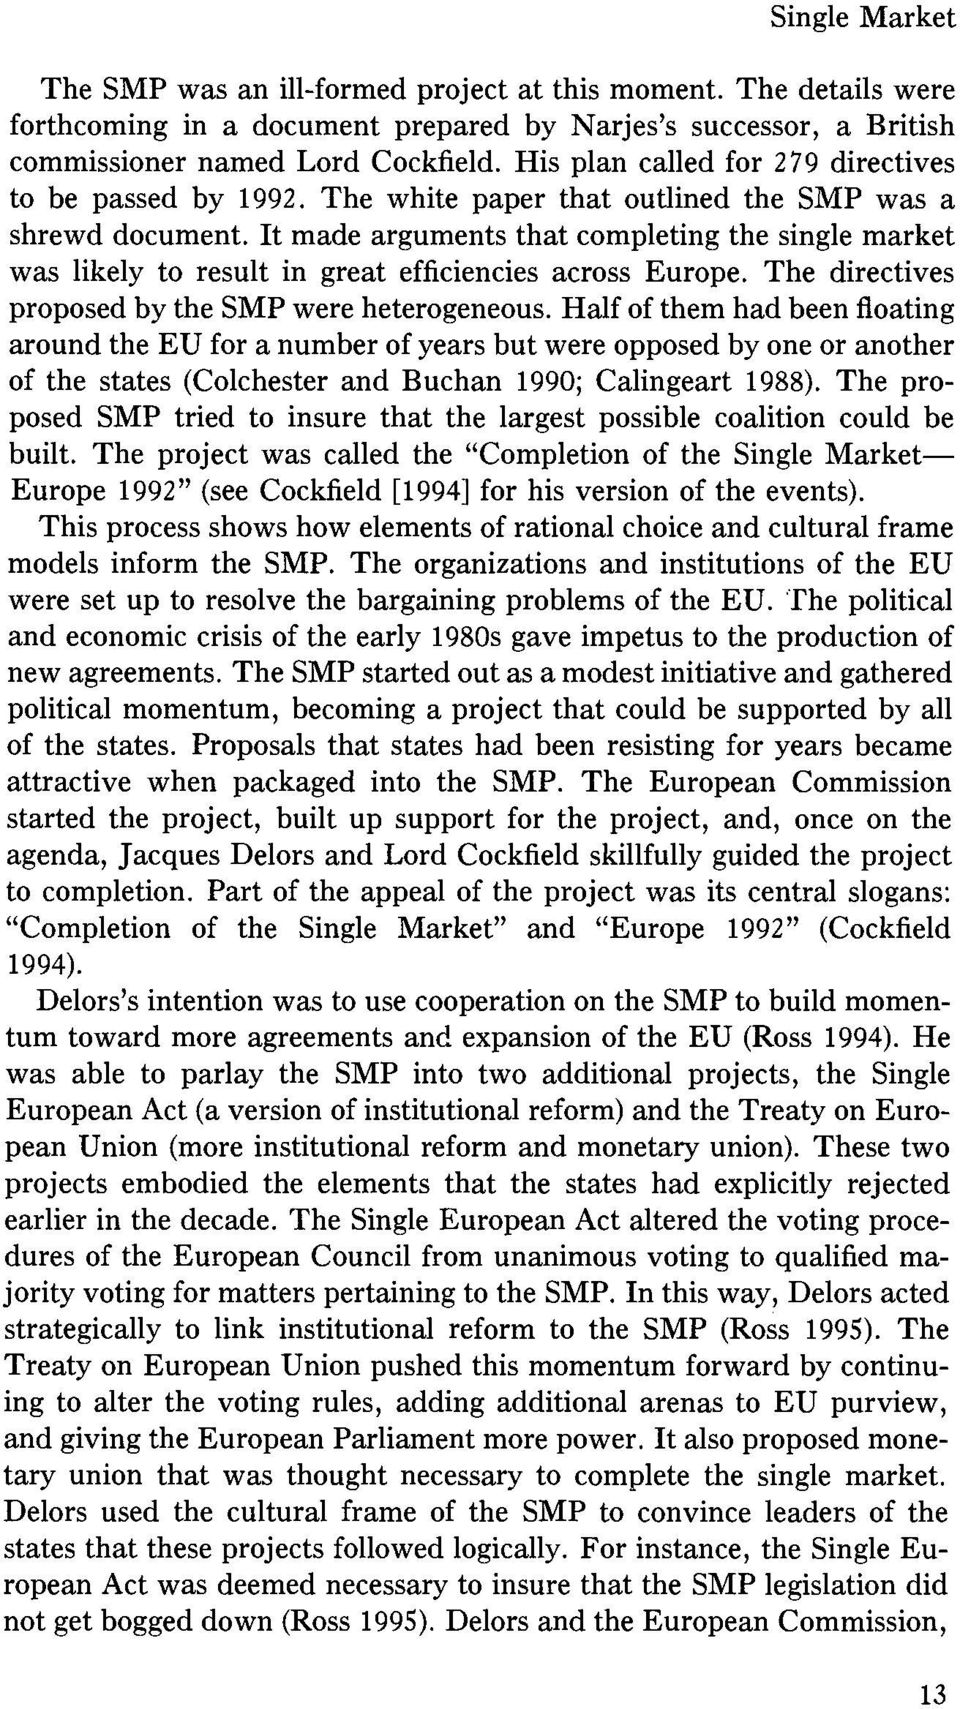 It made arguments that completing the single market was likely to result in great efficiencies across Europe. The directives proposed by the SMP were heterogeneous.